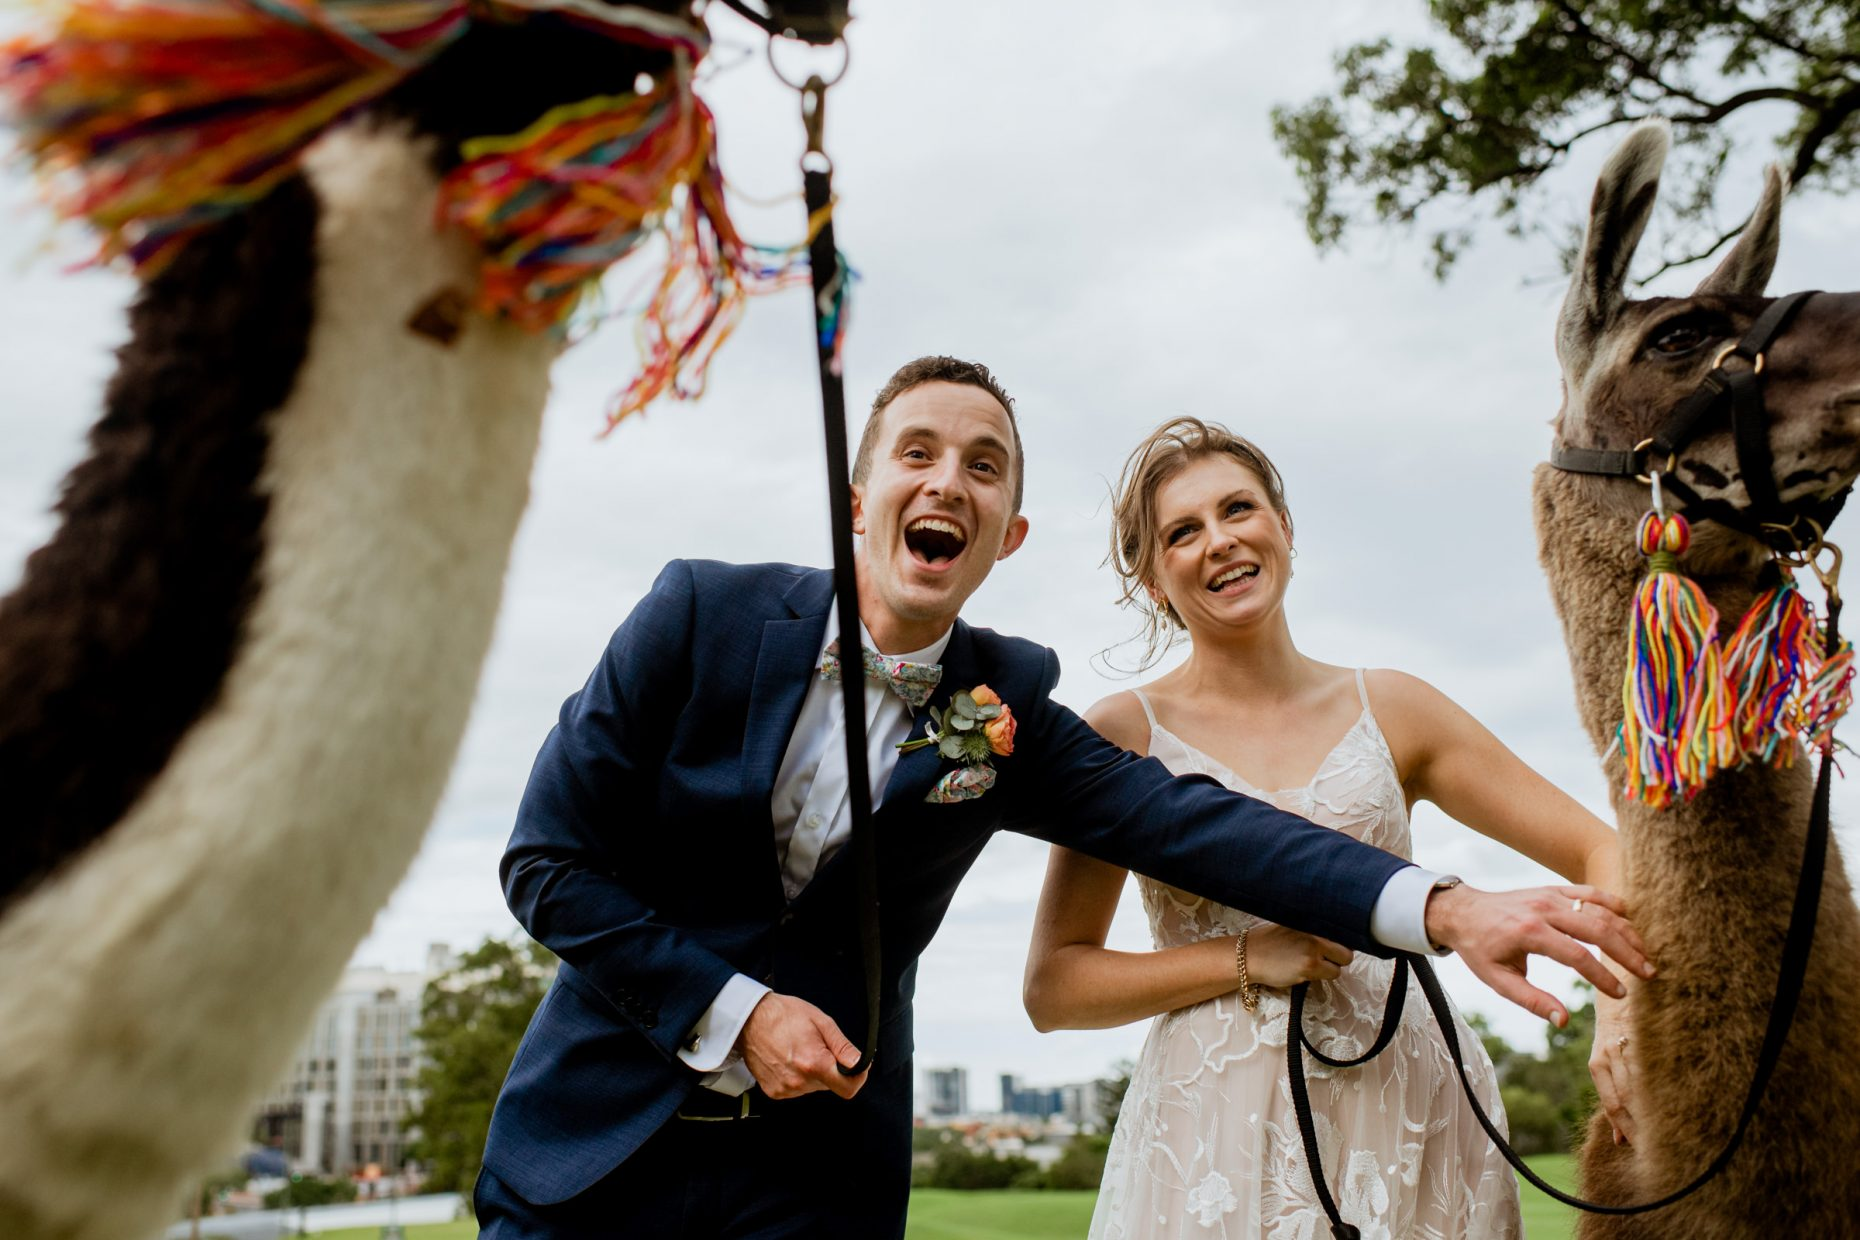 A bride and groom laugh excitedly as they hold llamas by the leash